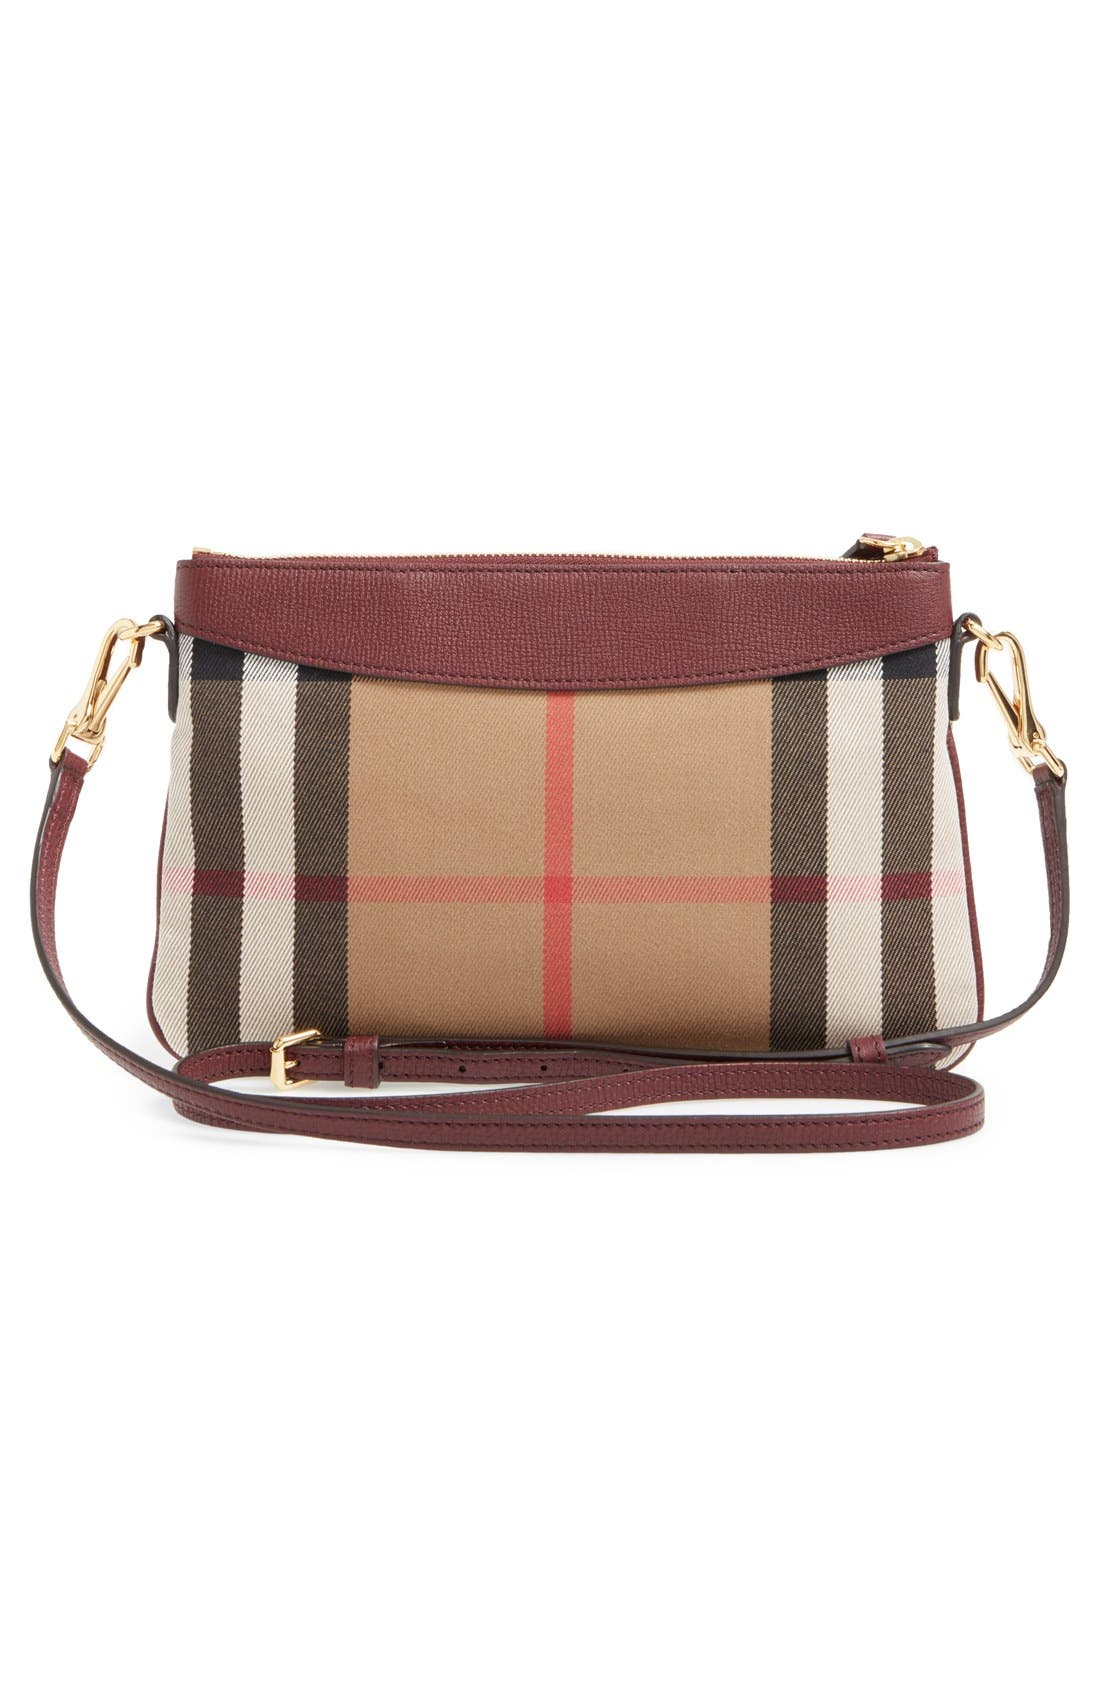 'Peyton - House Check' Crossbody Bag,                             Alternate thumbnail 3, color,                             606